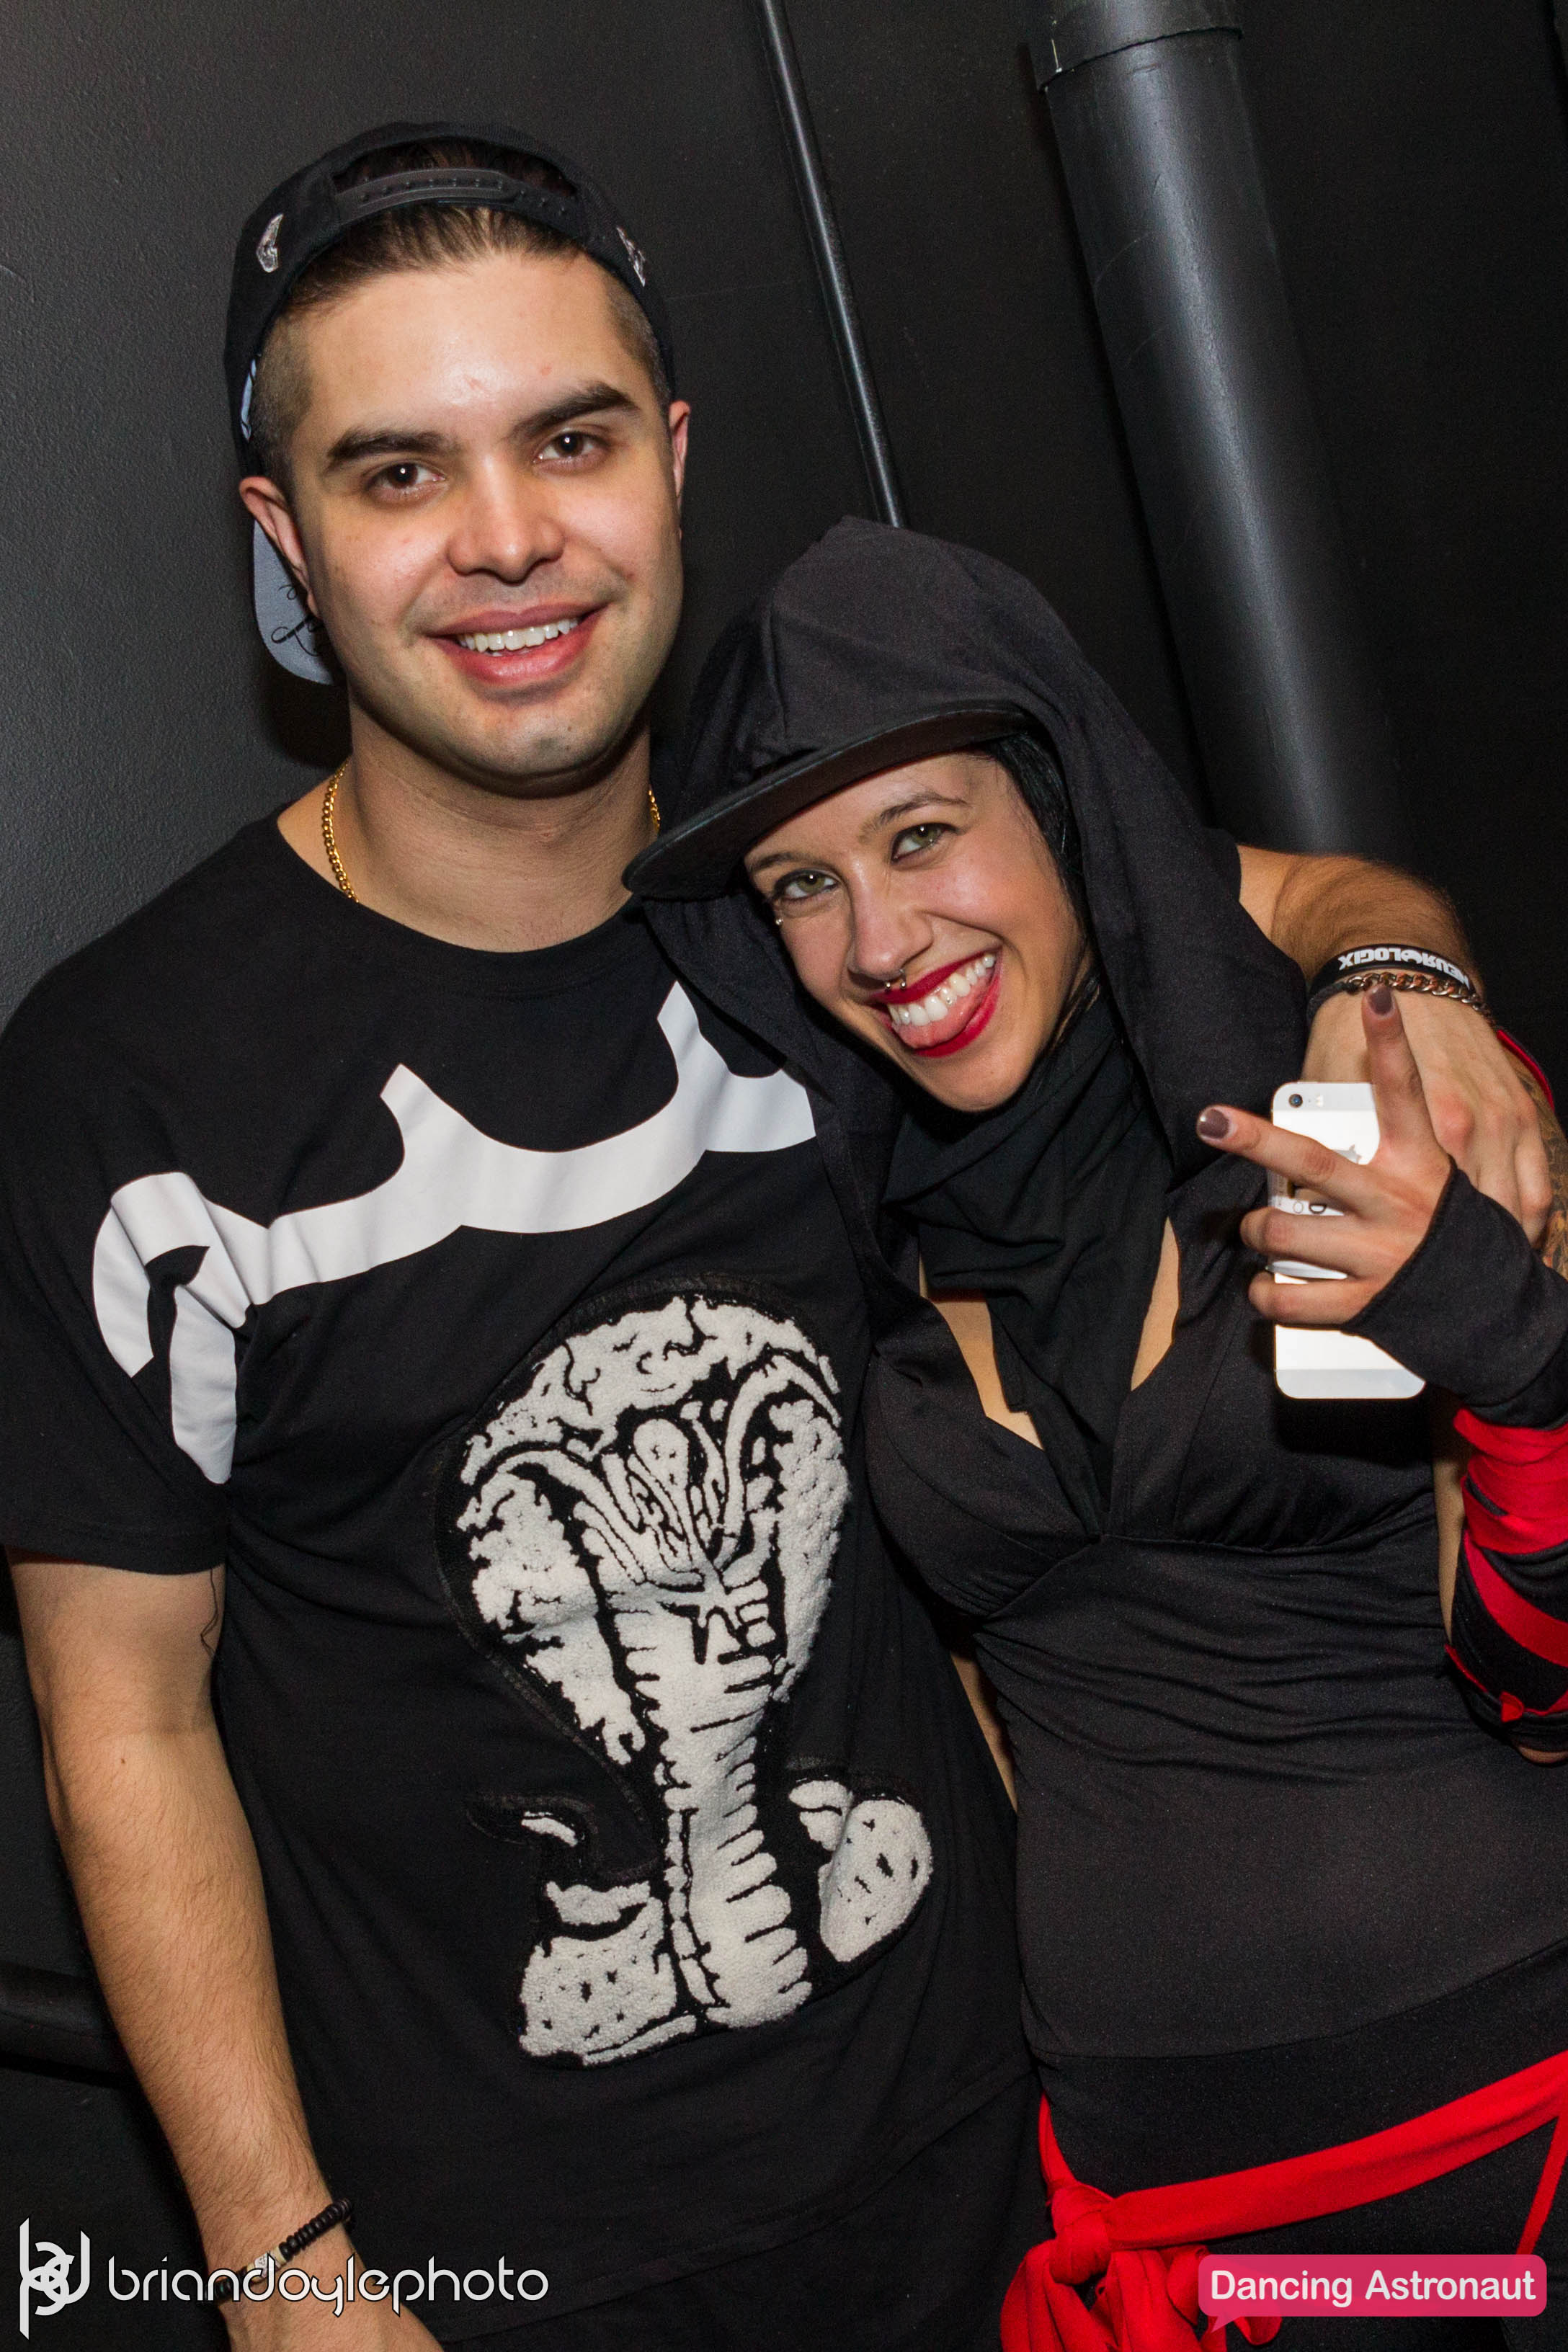 Datsik Ninja Nation Tour at Exchange LA 15.03.2015-8.jpg